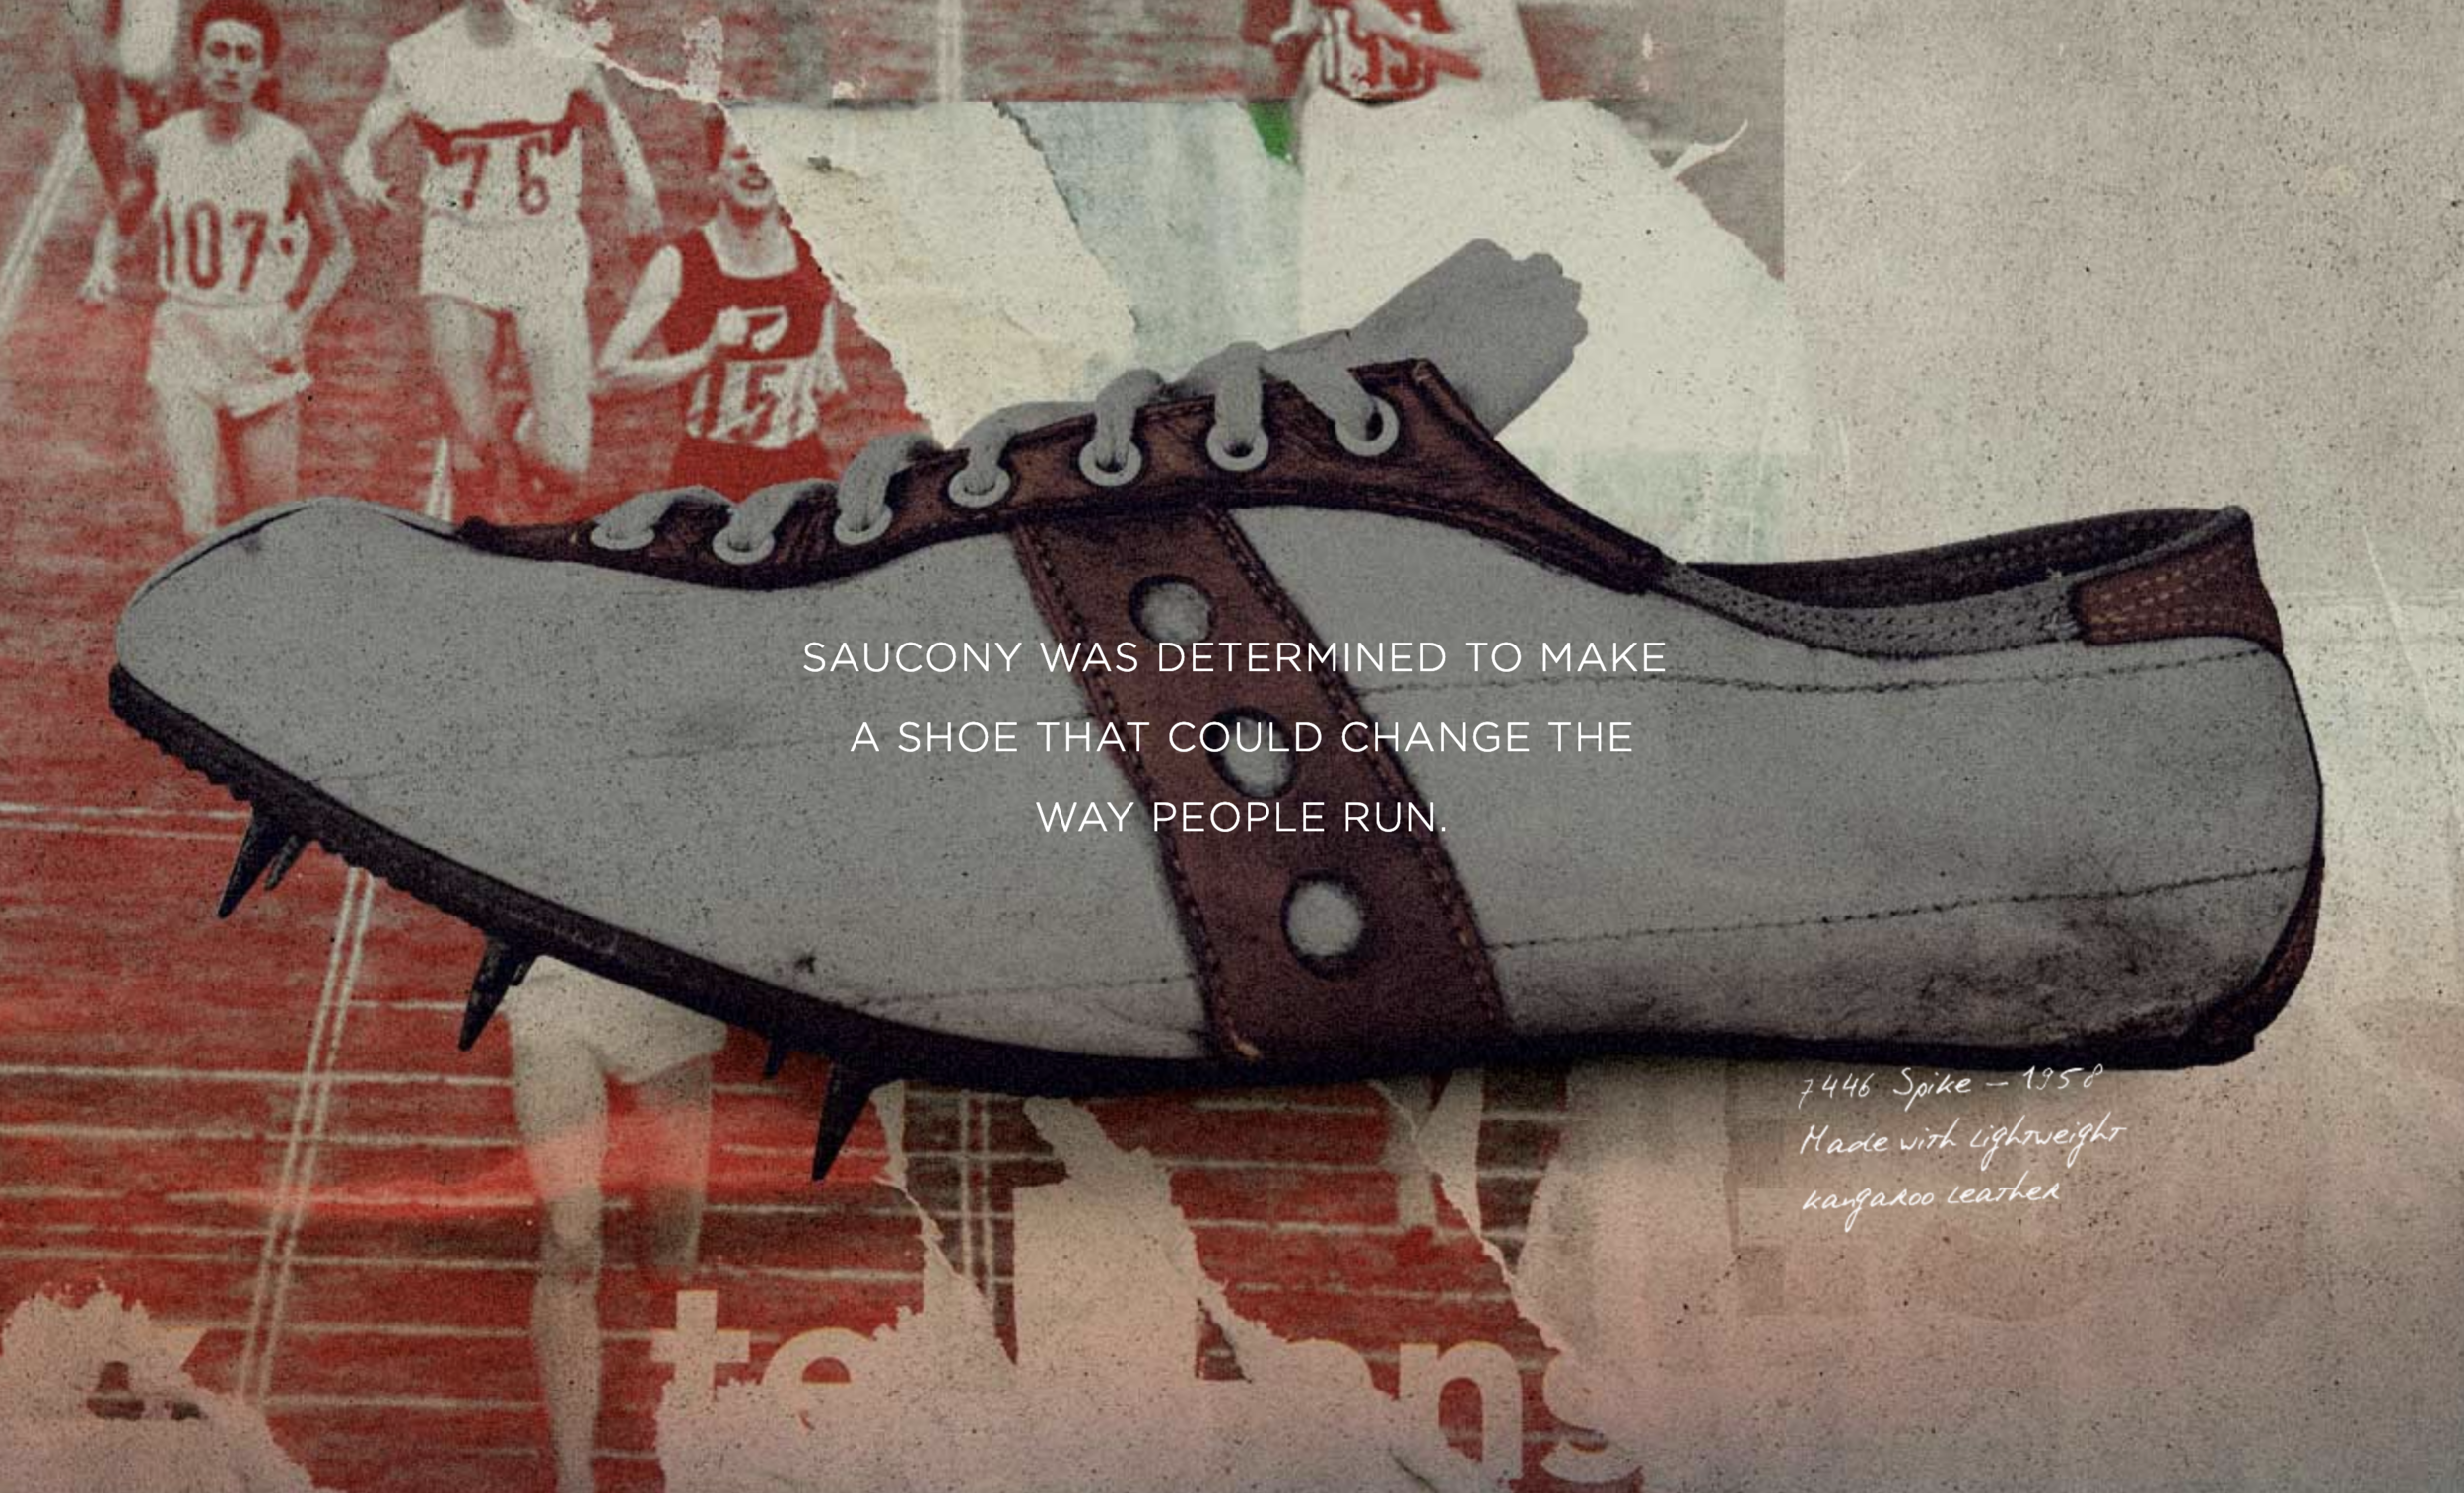 """Saucony was determined to make a shoe that could change the way people run."" -  Saucony history"